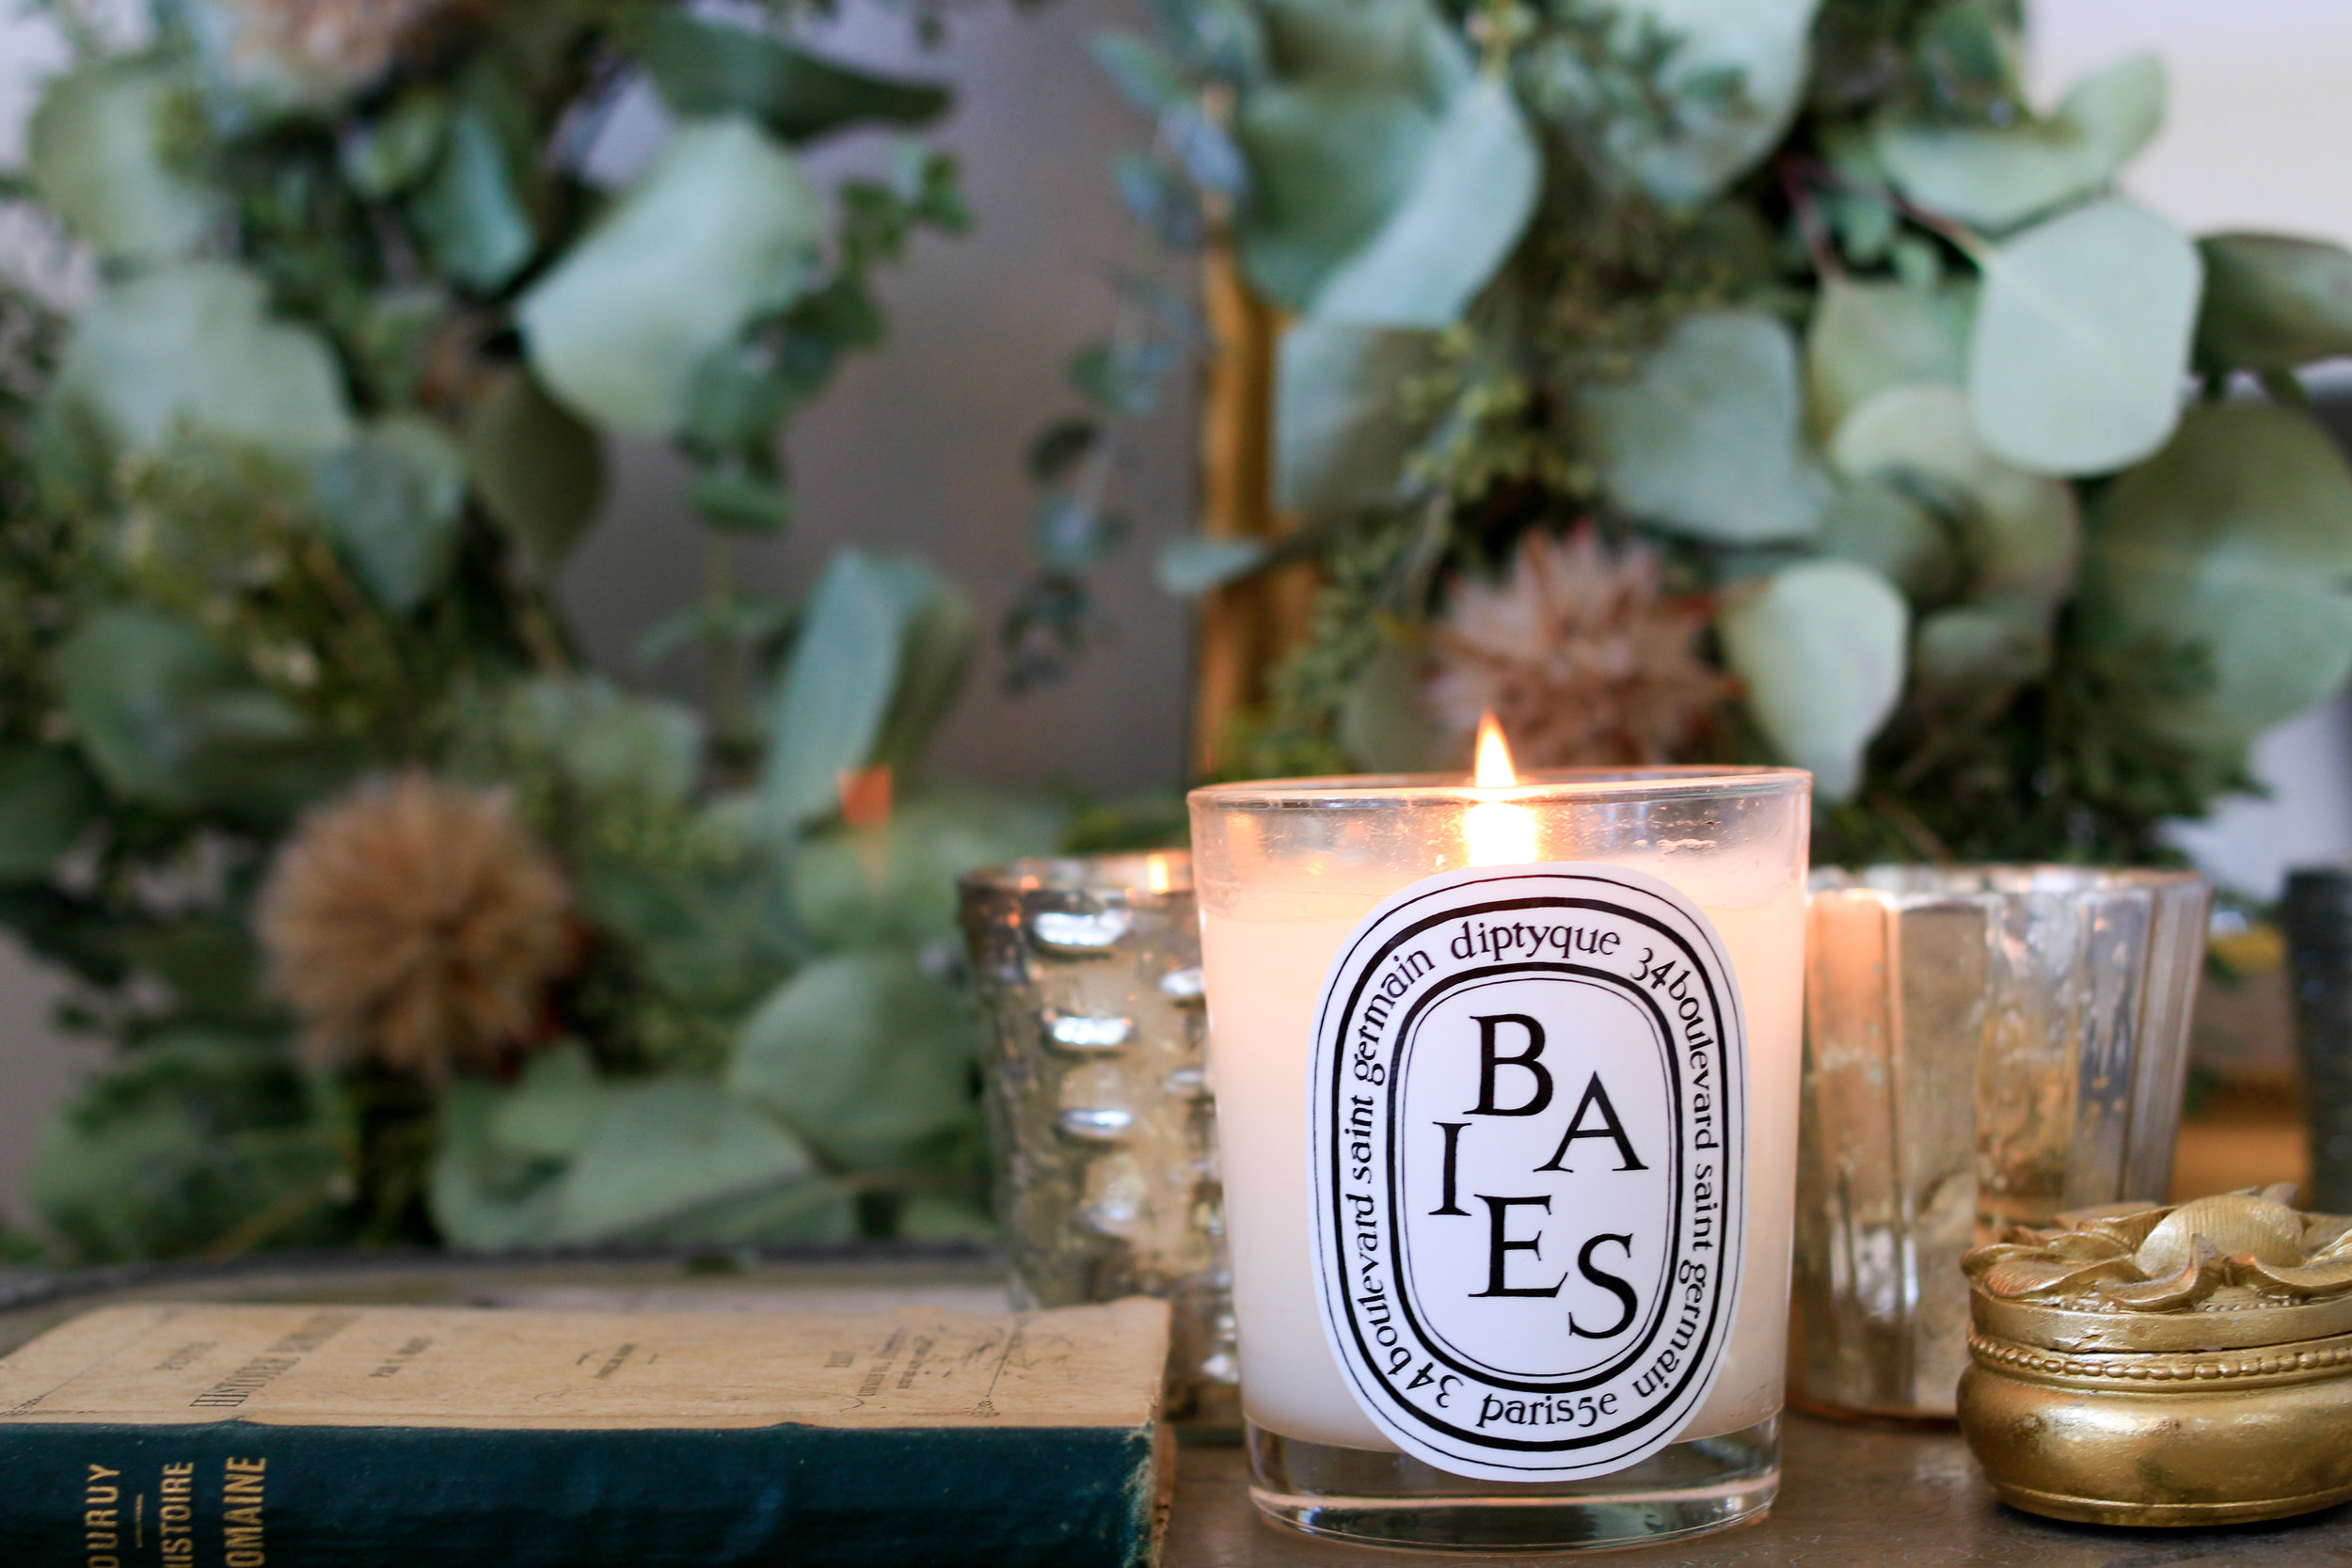 diptyque candle @rebeccaplotnick